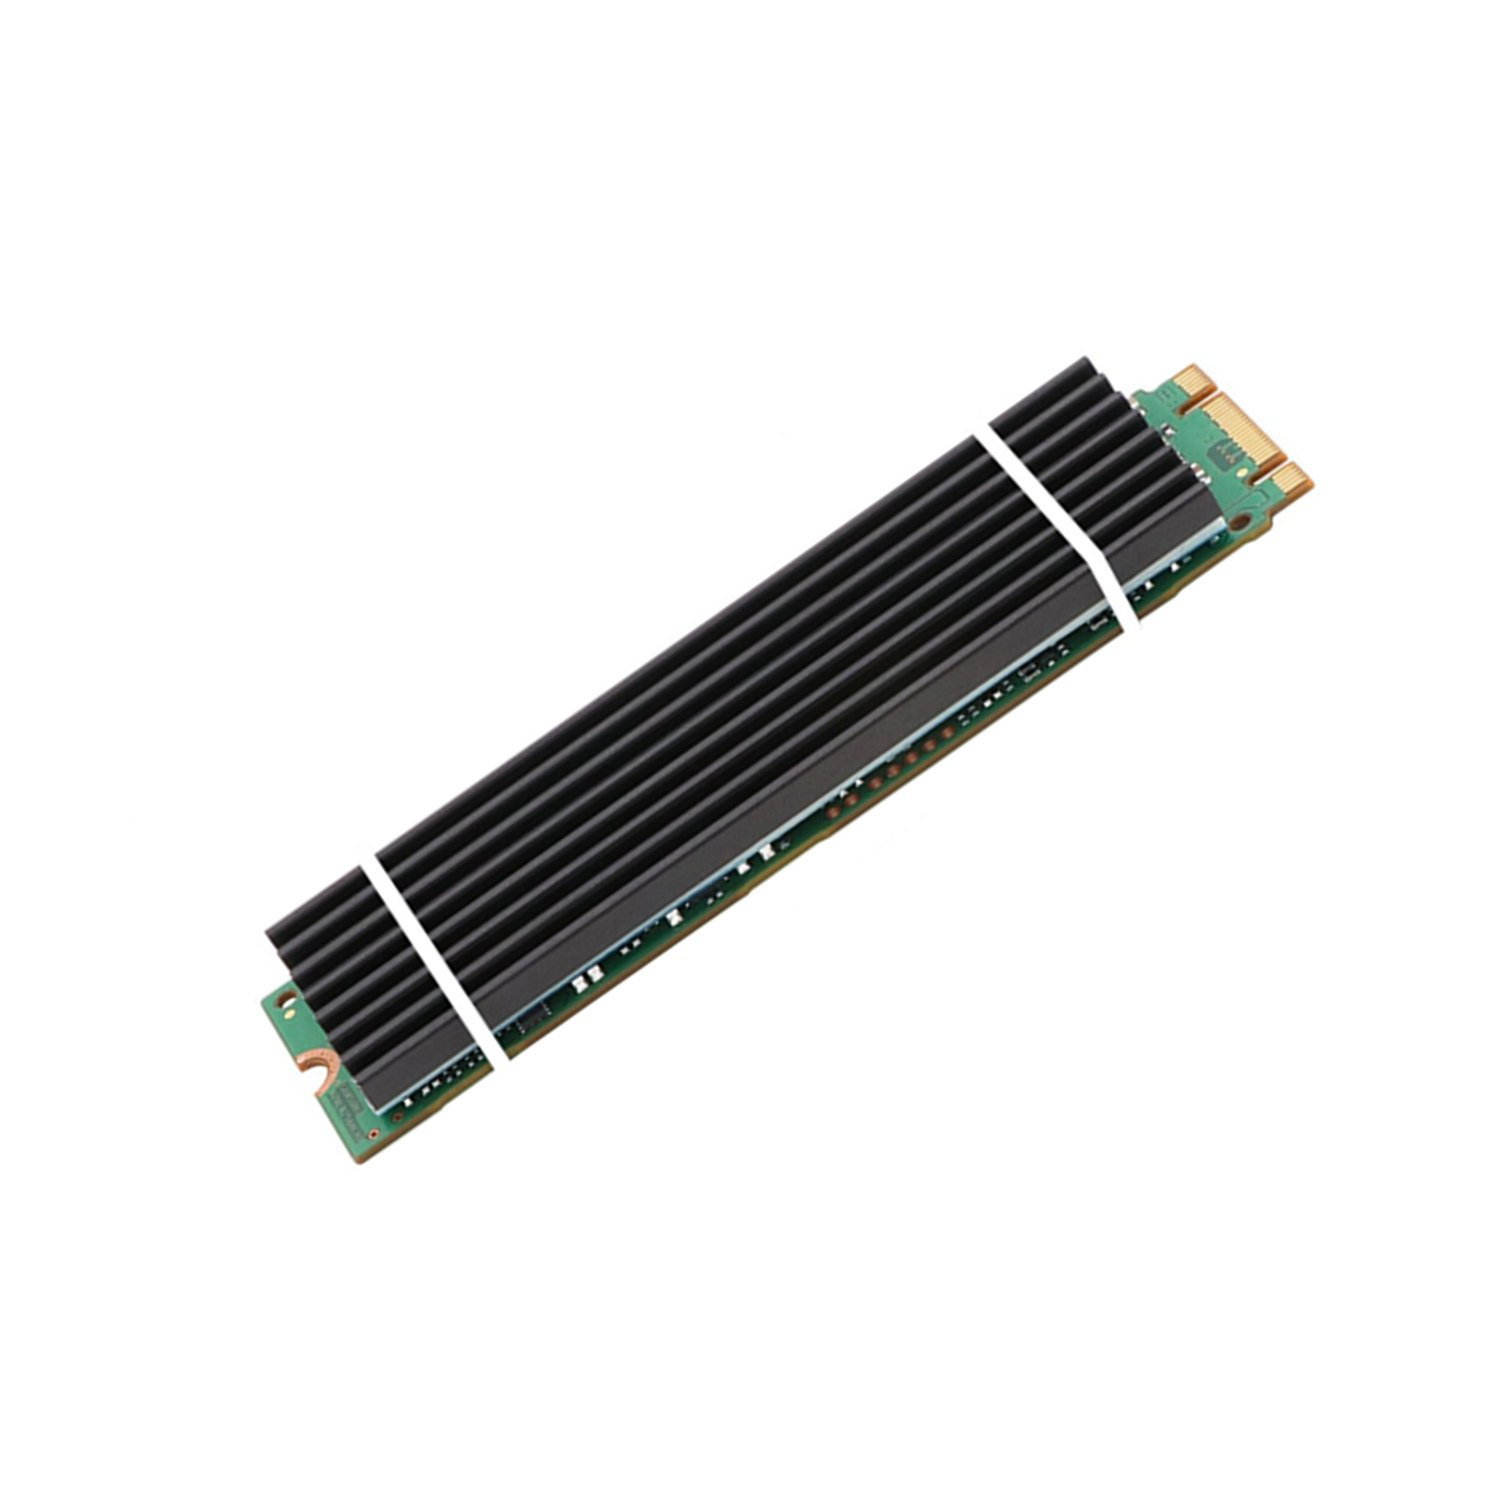 Aluminum Heatsinks for PCIe NVMe M.2 2280 SSD with Silicone Thermal Pad, DIY Laptop PC Memory Cooling Fin Radiation Dissipate (Ordinary Edition) by Angel mall (Image #3)